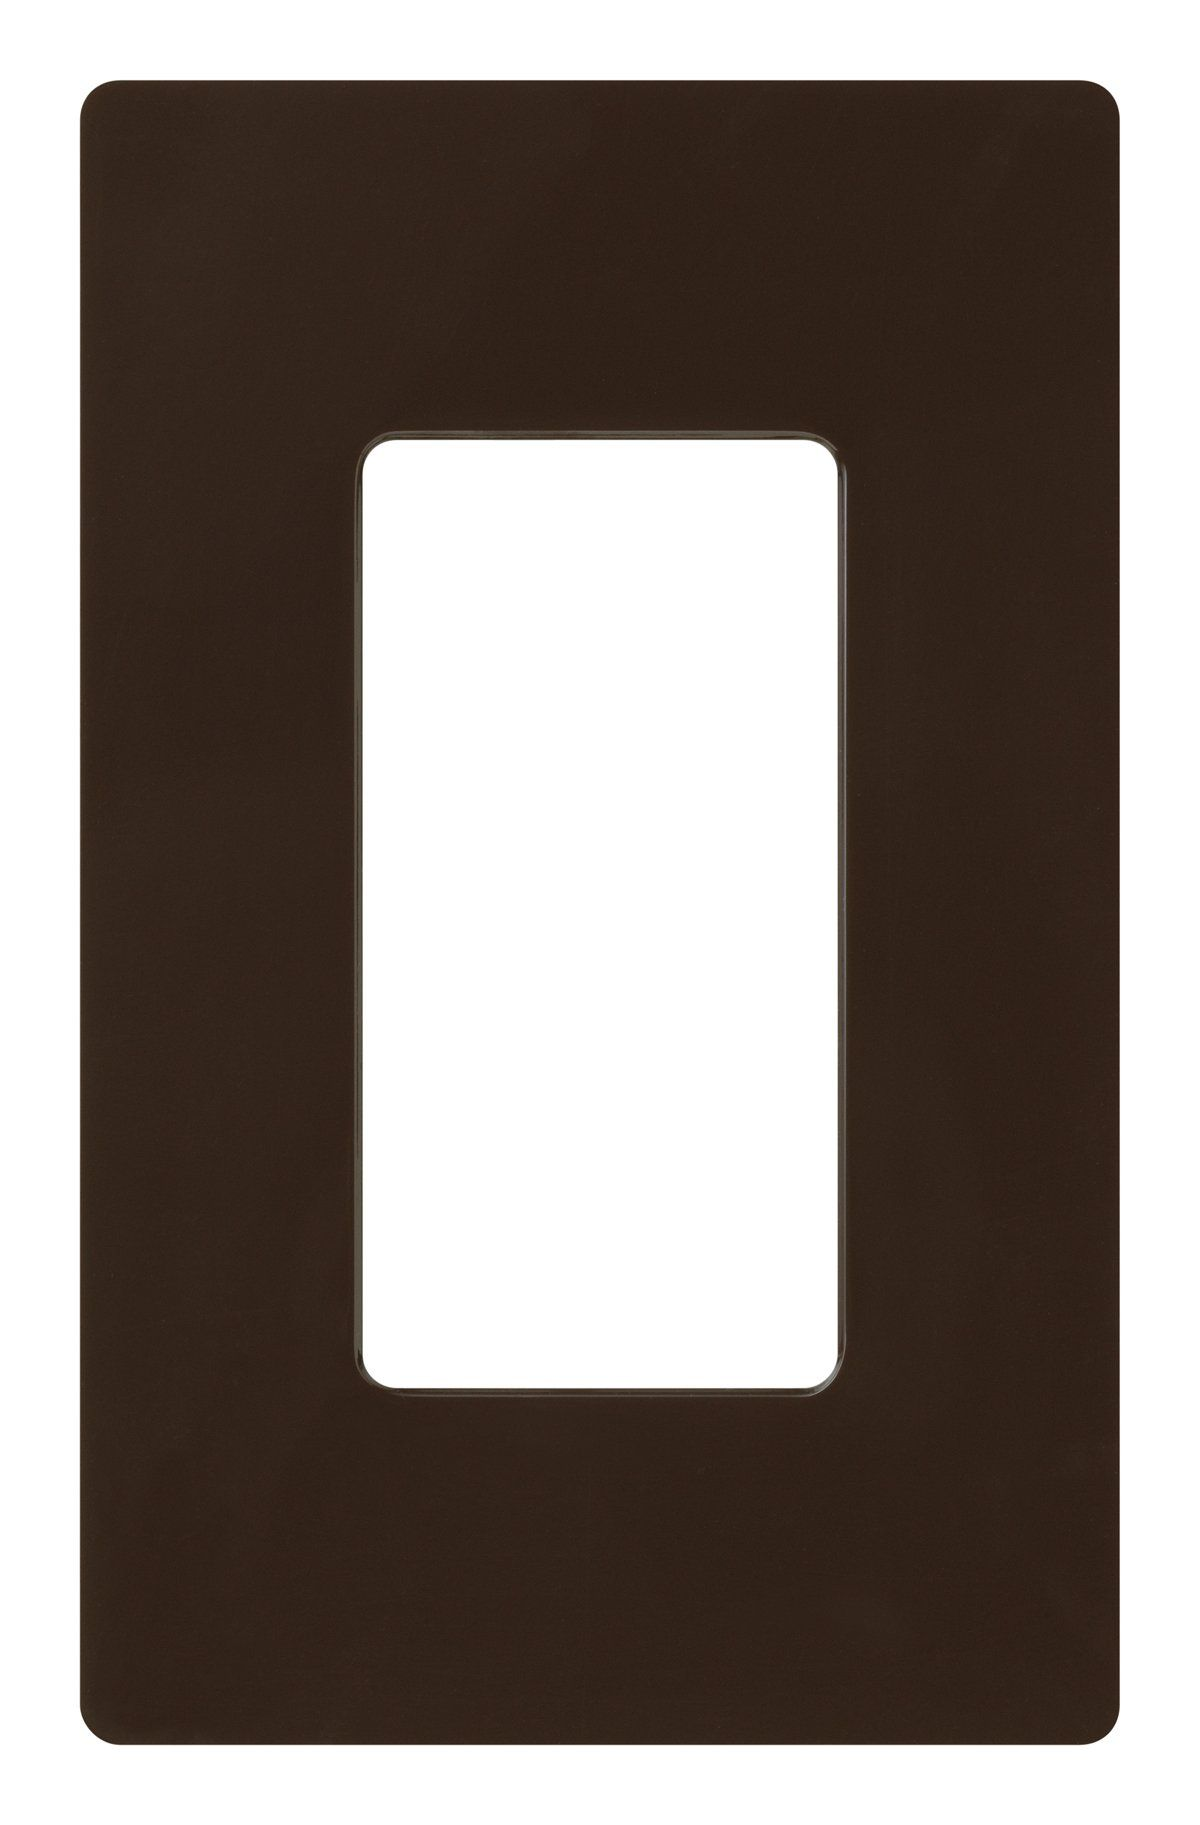 lutron claro dimensions nordyne e1eh wiring diagram cw 1 br gang wallplate brown 5 97 part number